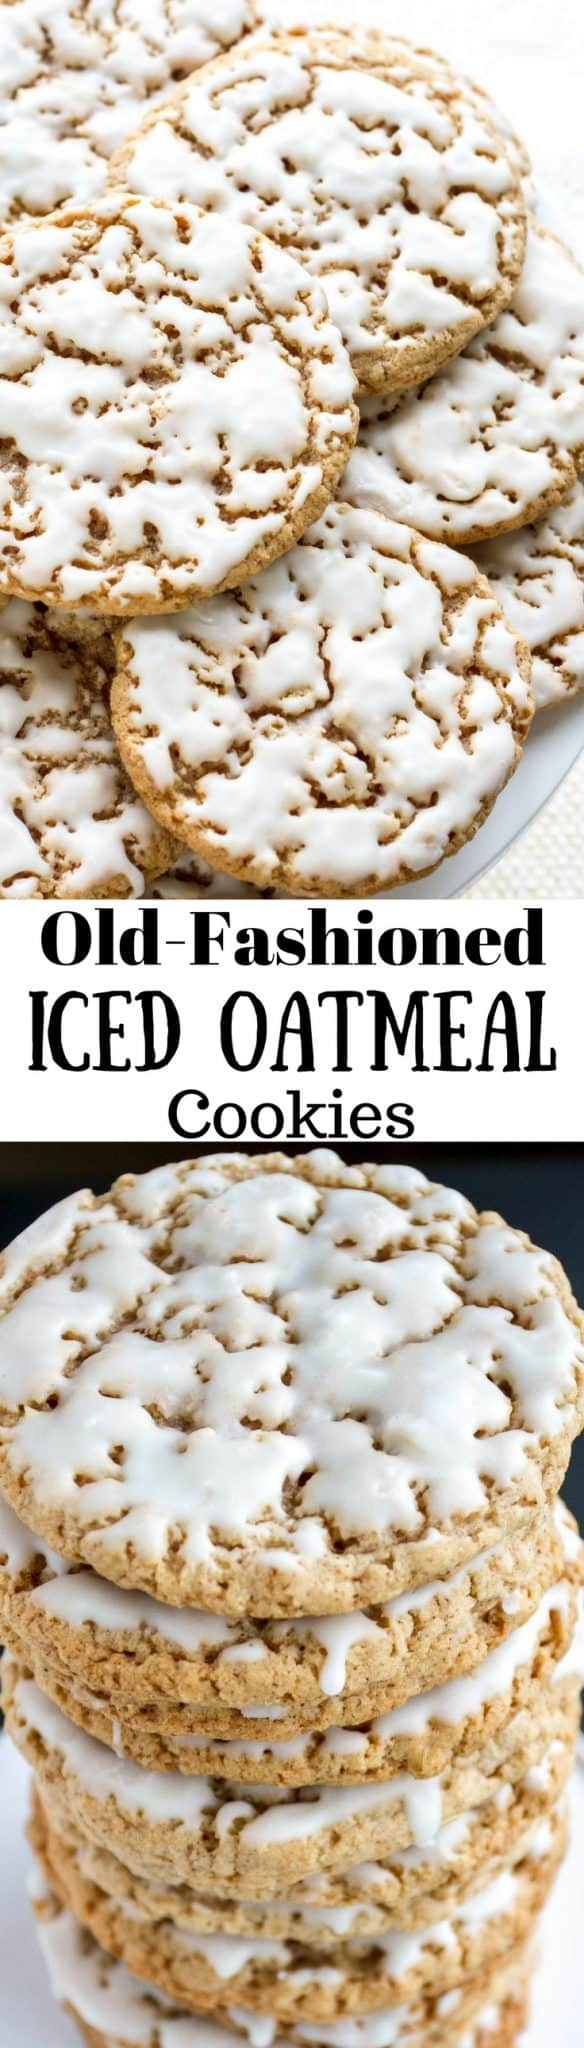 Soft Oatmeal Cookies With Old Fashioned Oats